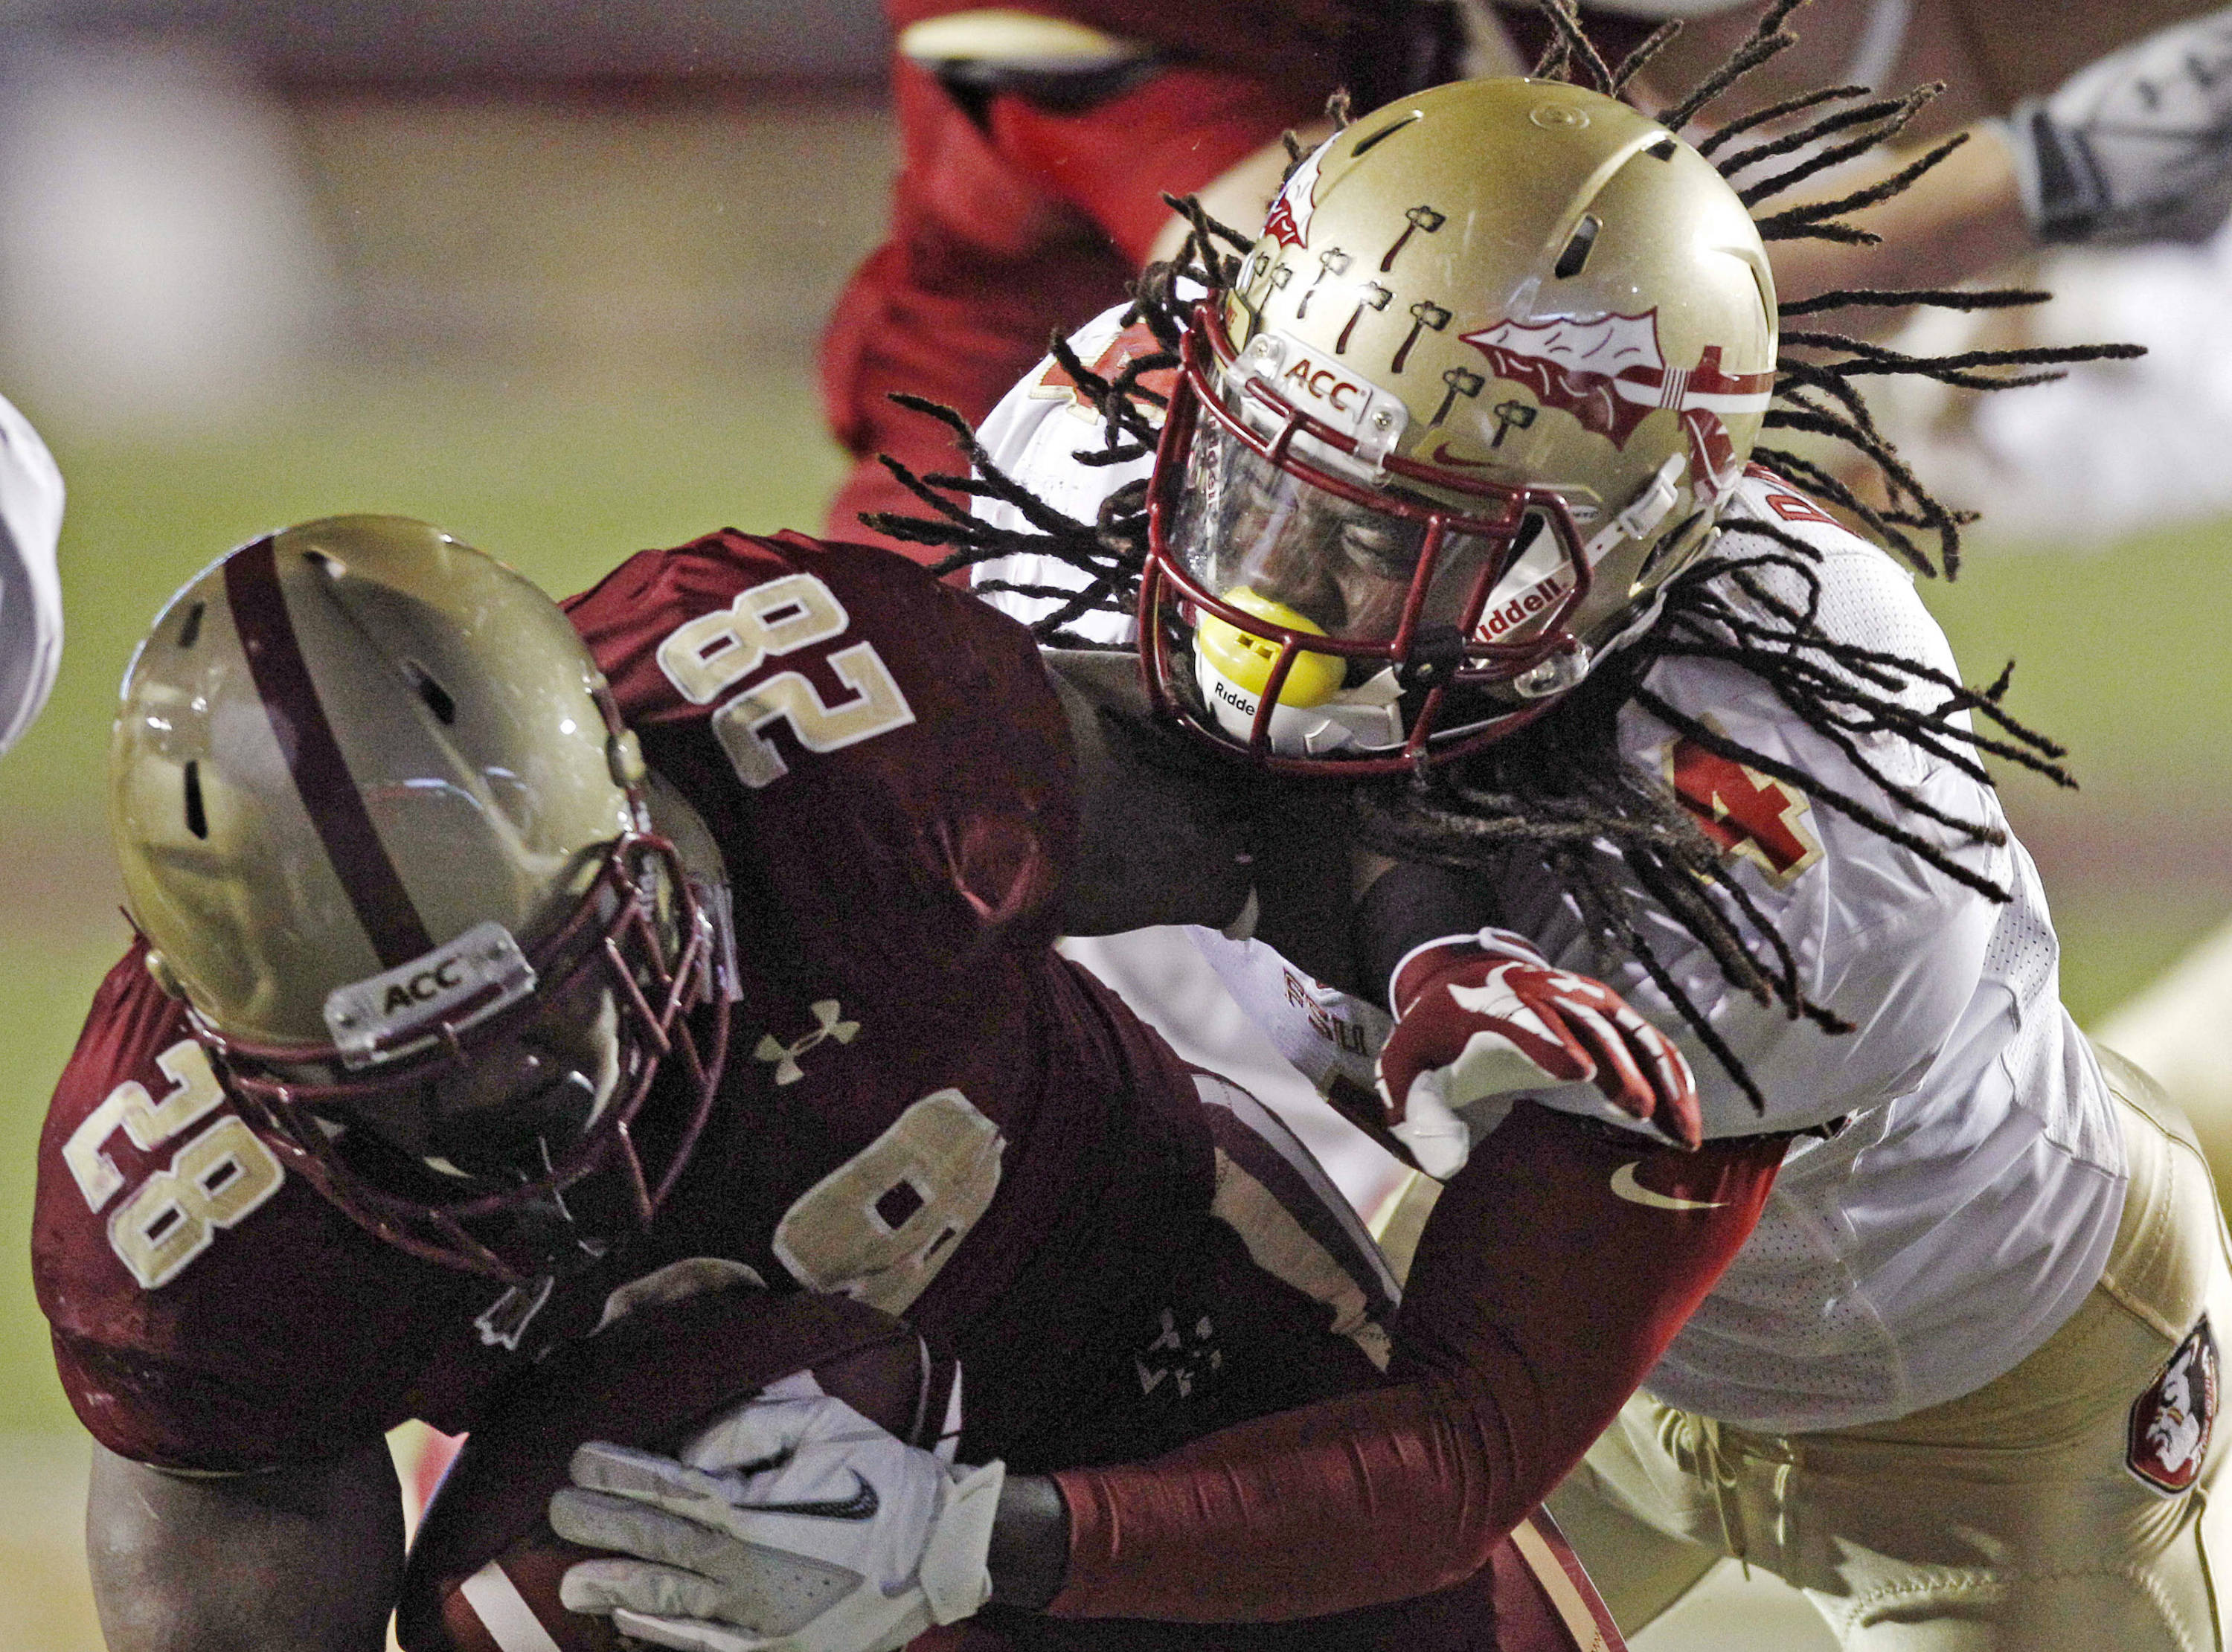 Florida State safety Terrence Parks, right, tries to strip the ball from the hands of Boston College running back Roland Finch (28) during the second half. (AP Photo/Charles Krupa)